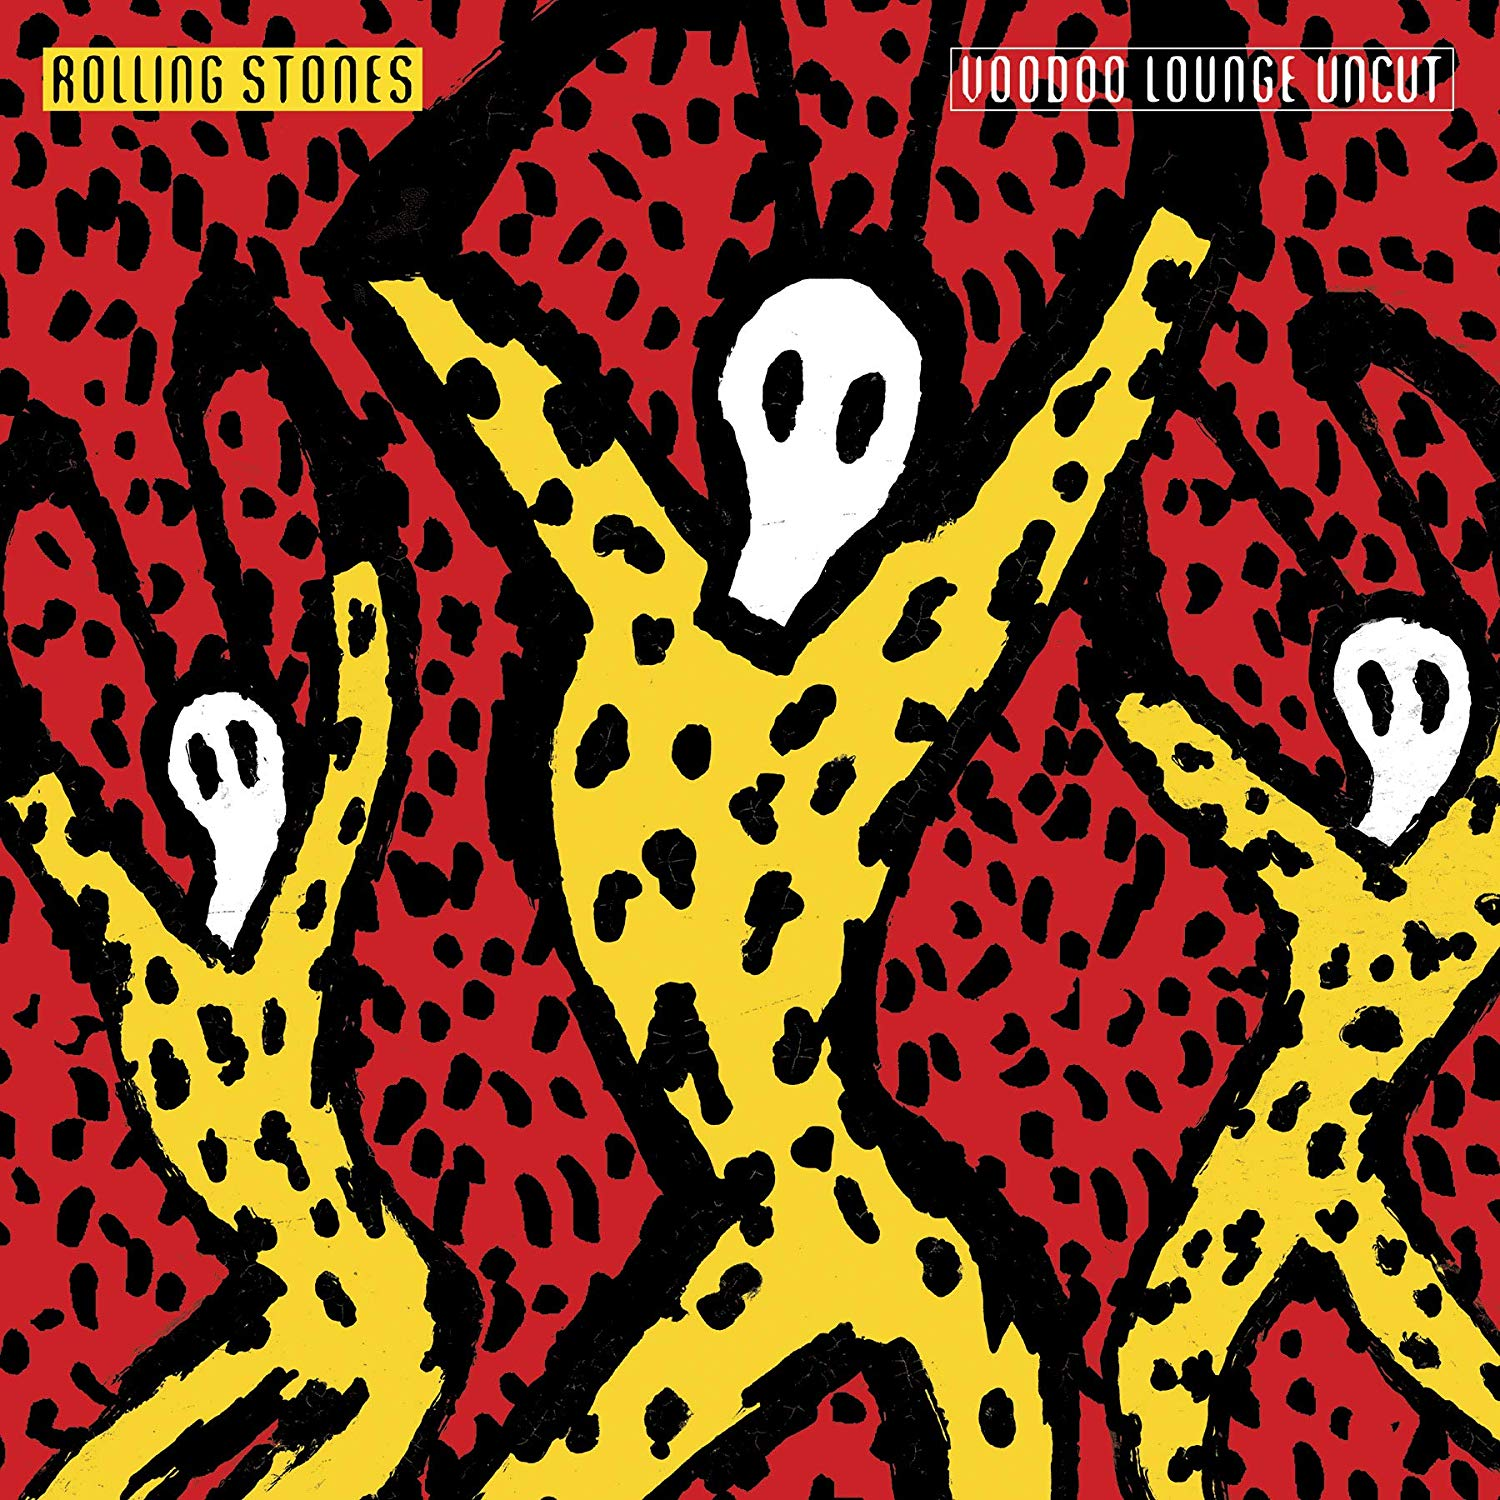 The Rolling Stones - Voodoo Lounge Uncut [Red 3LP]